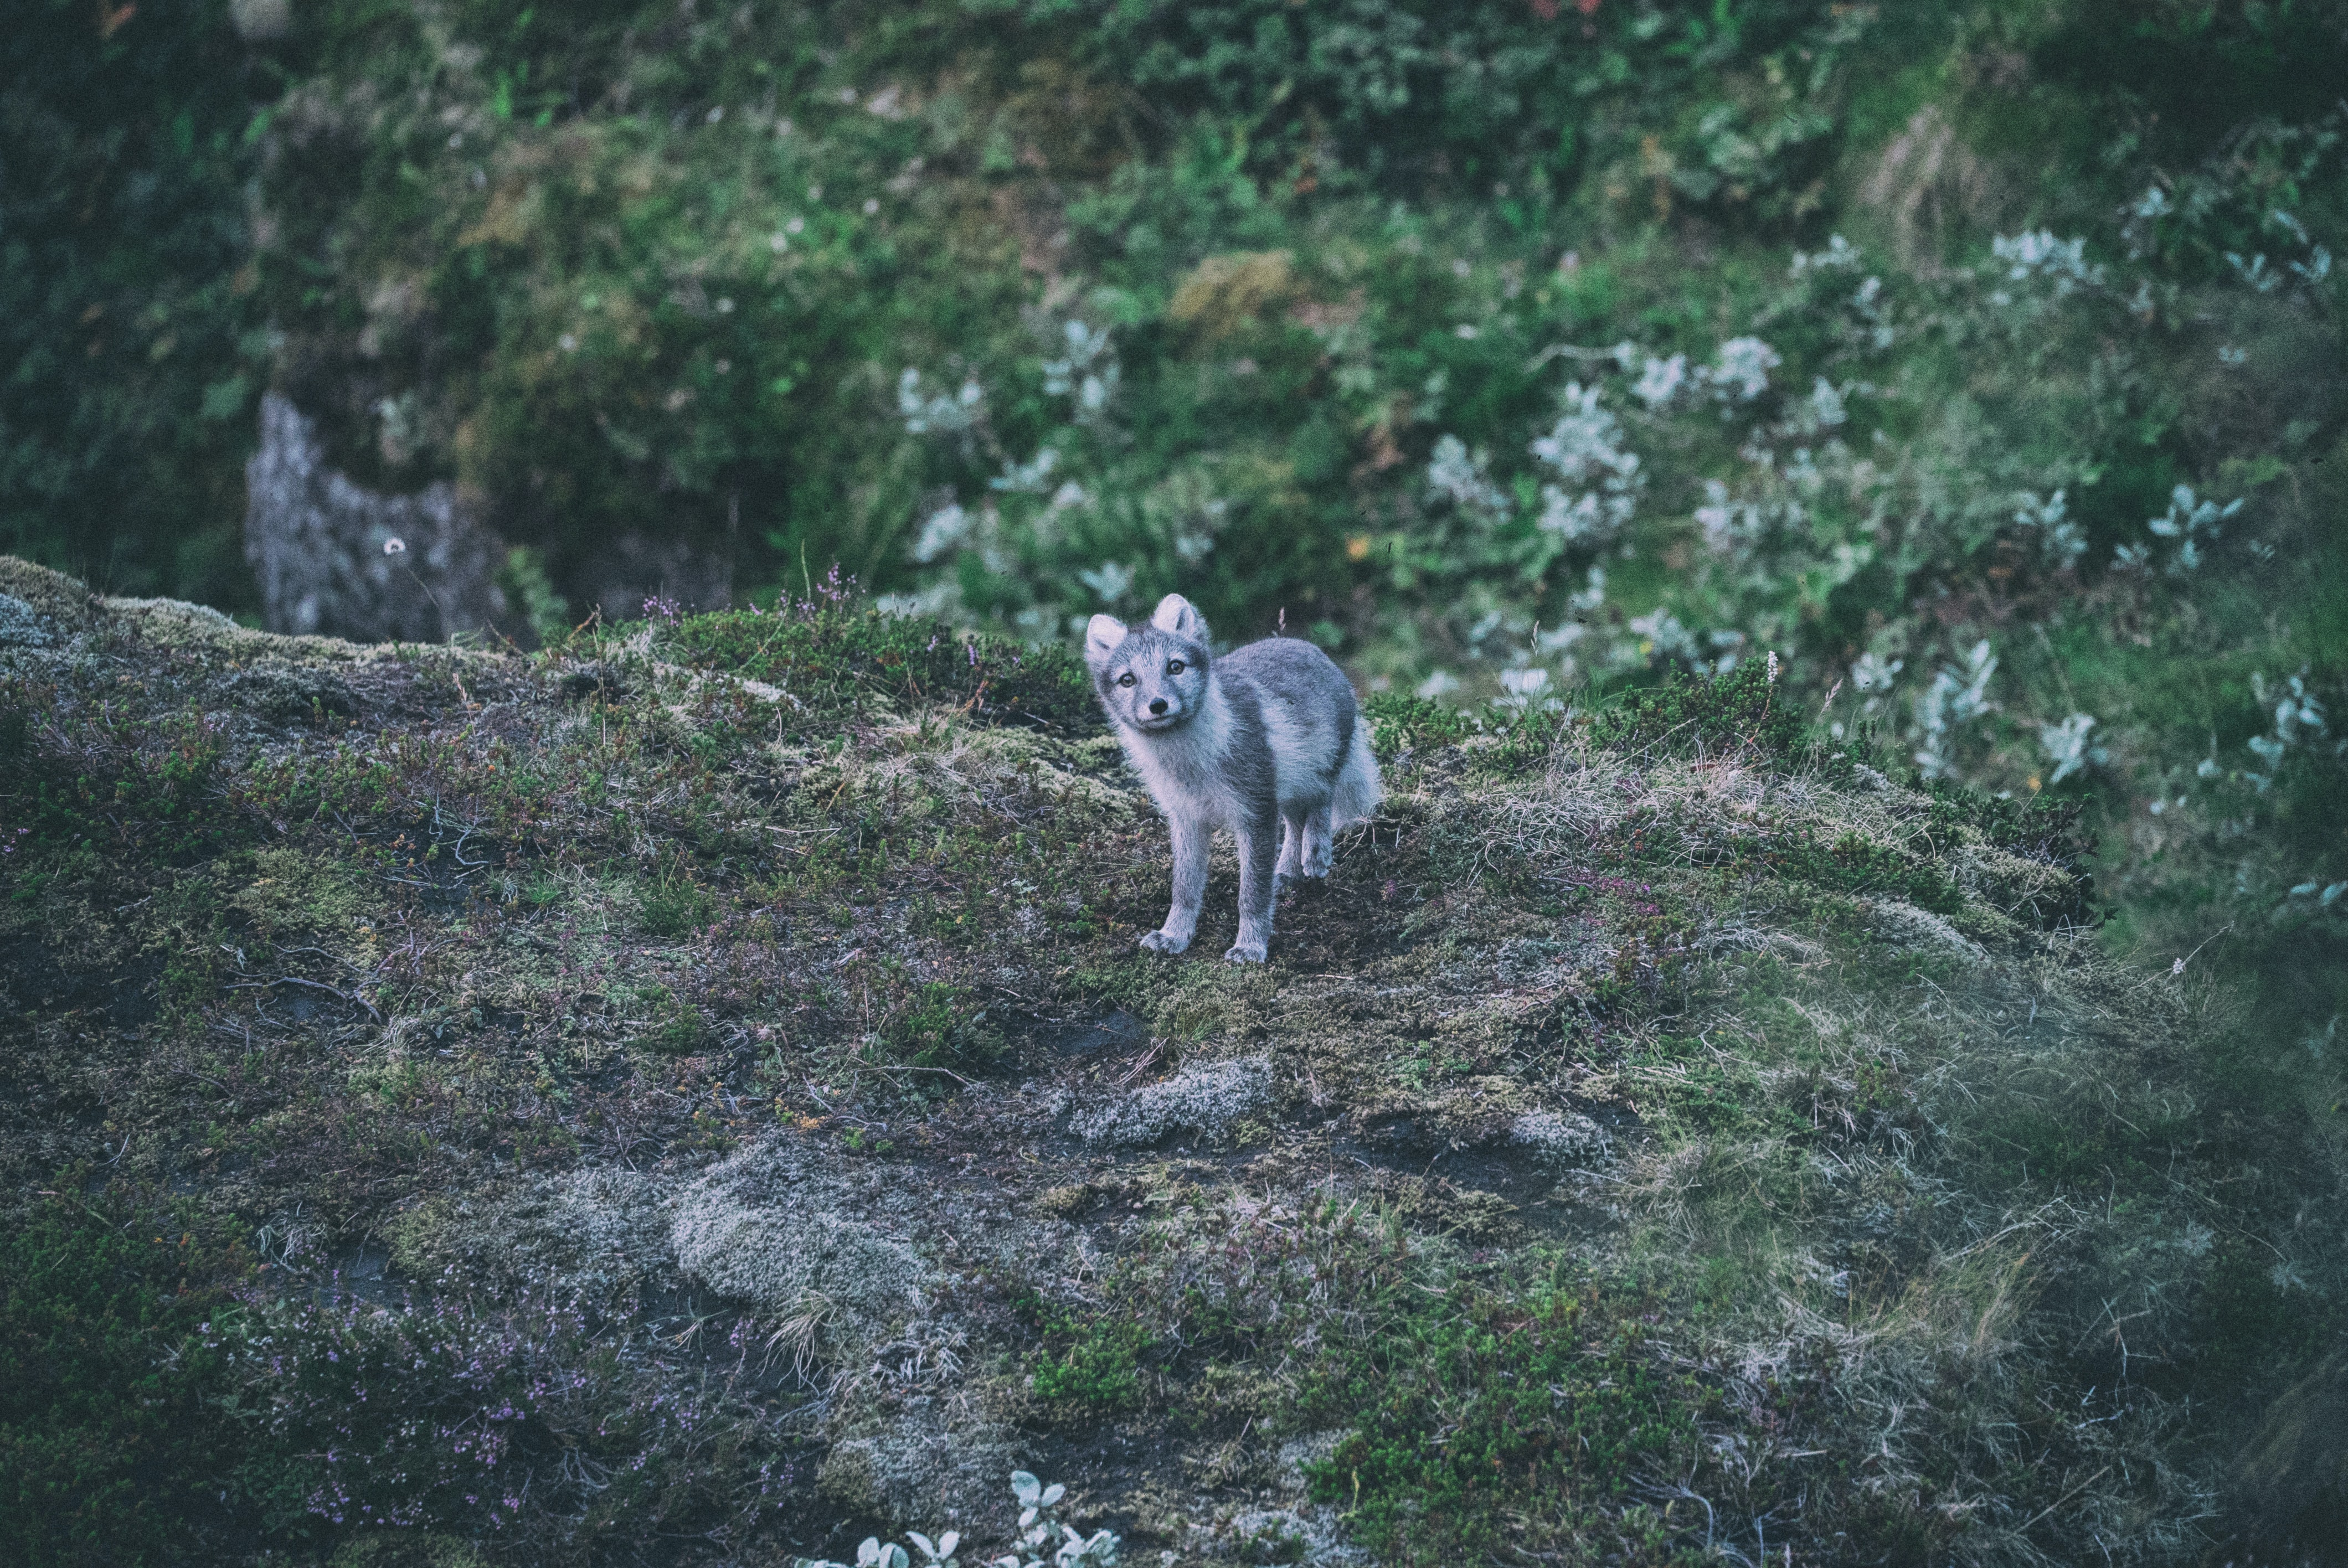 A baby wolf staring at the camera in the wilderness